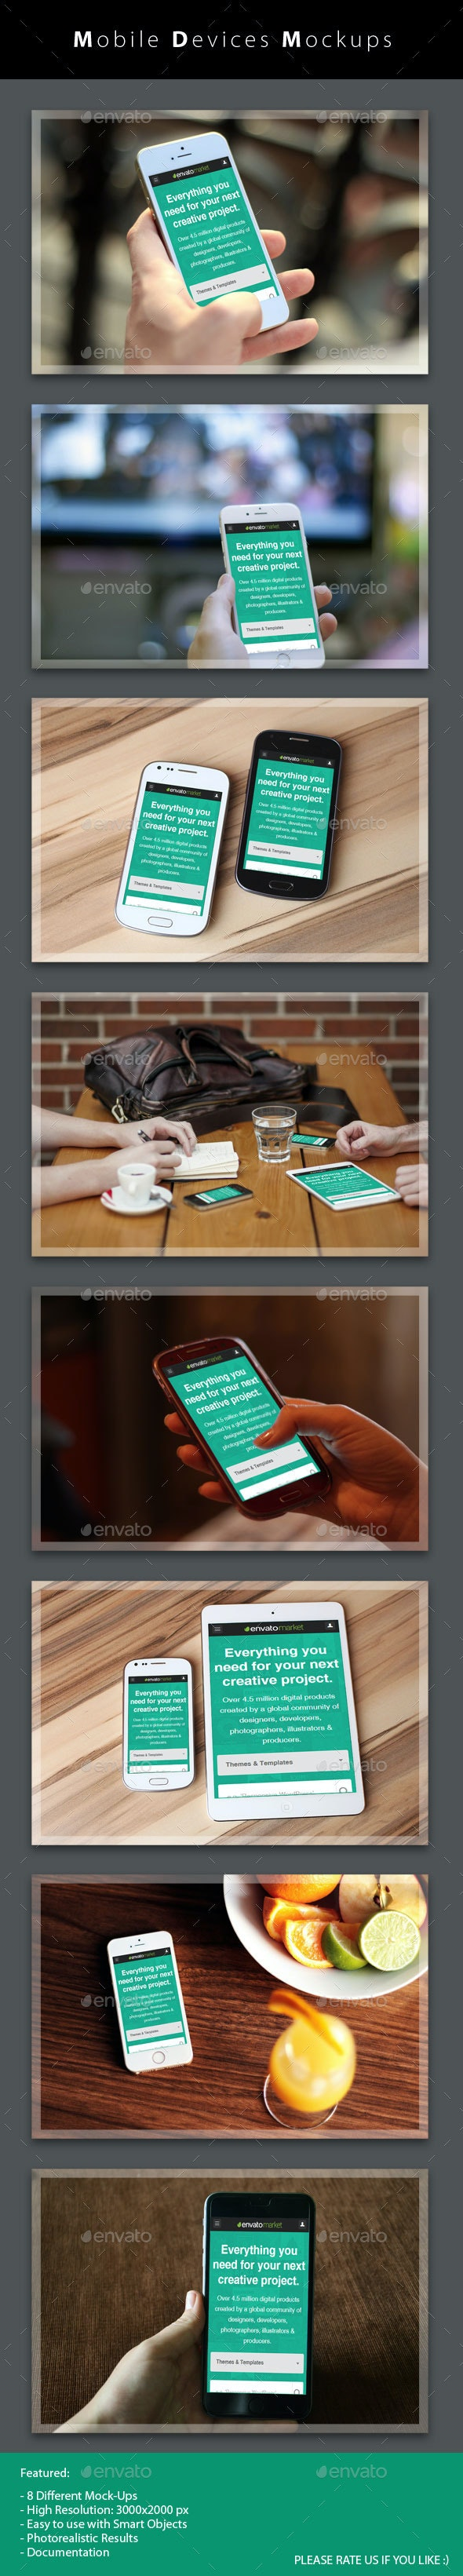 Mobile Devices Mockups - Product Mock-Ups Graphics